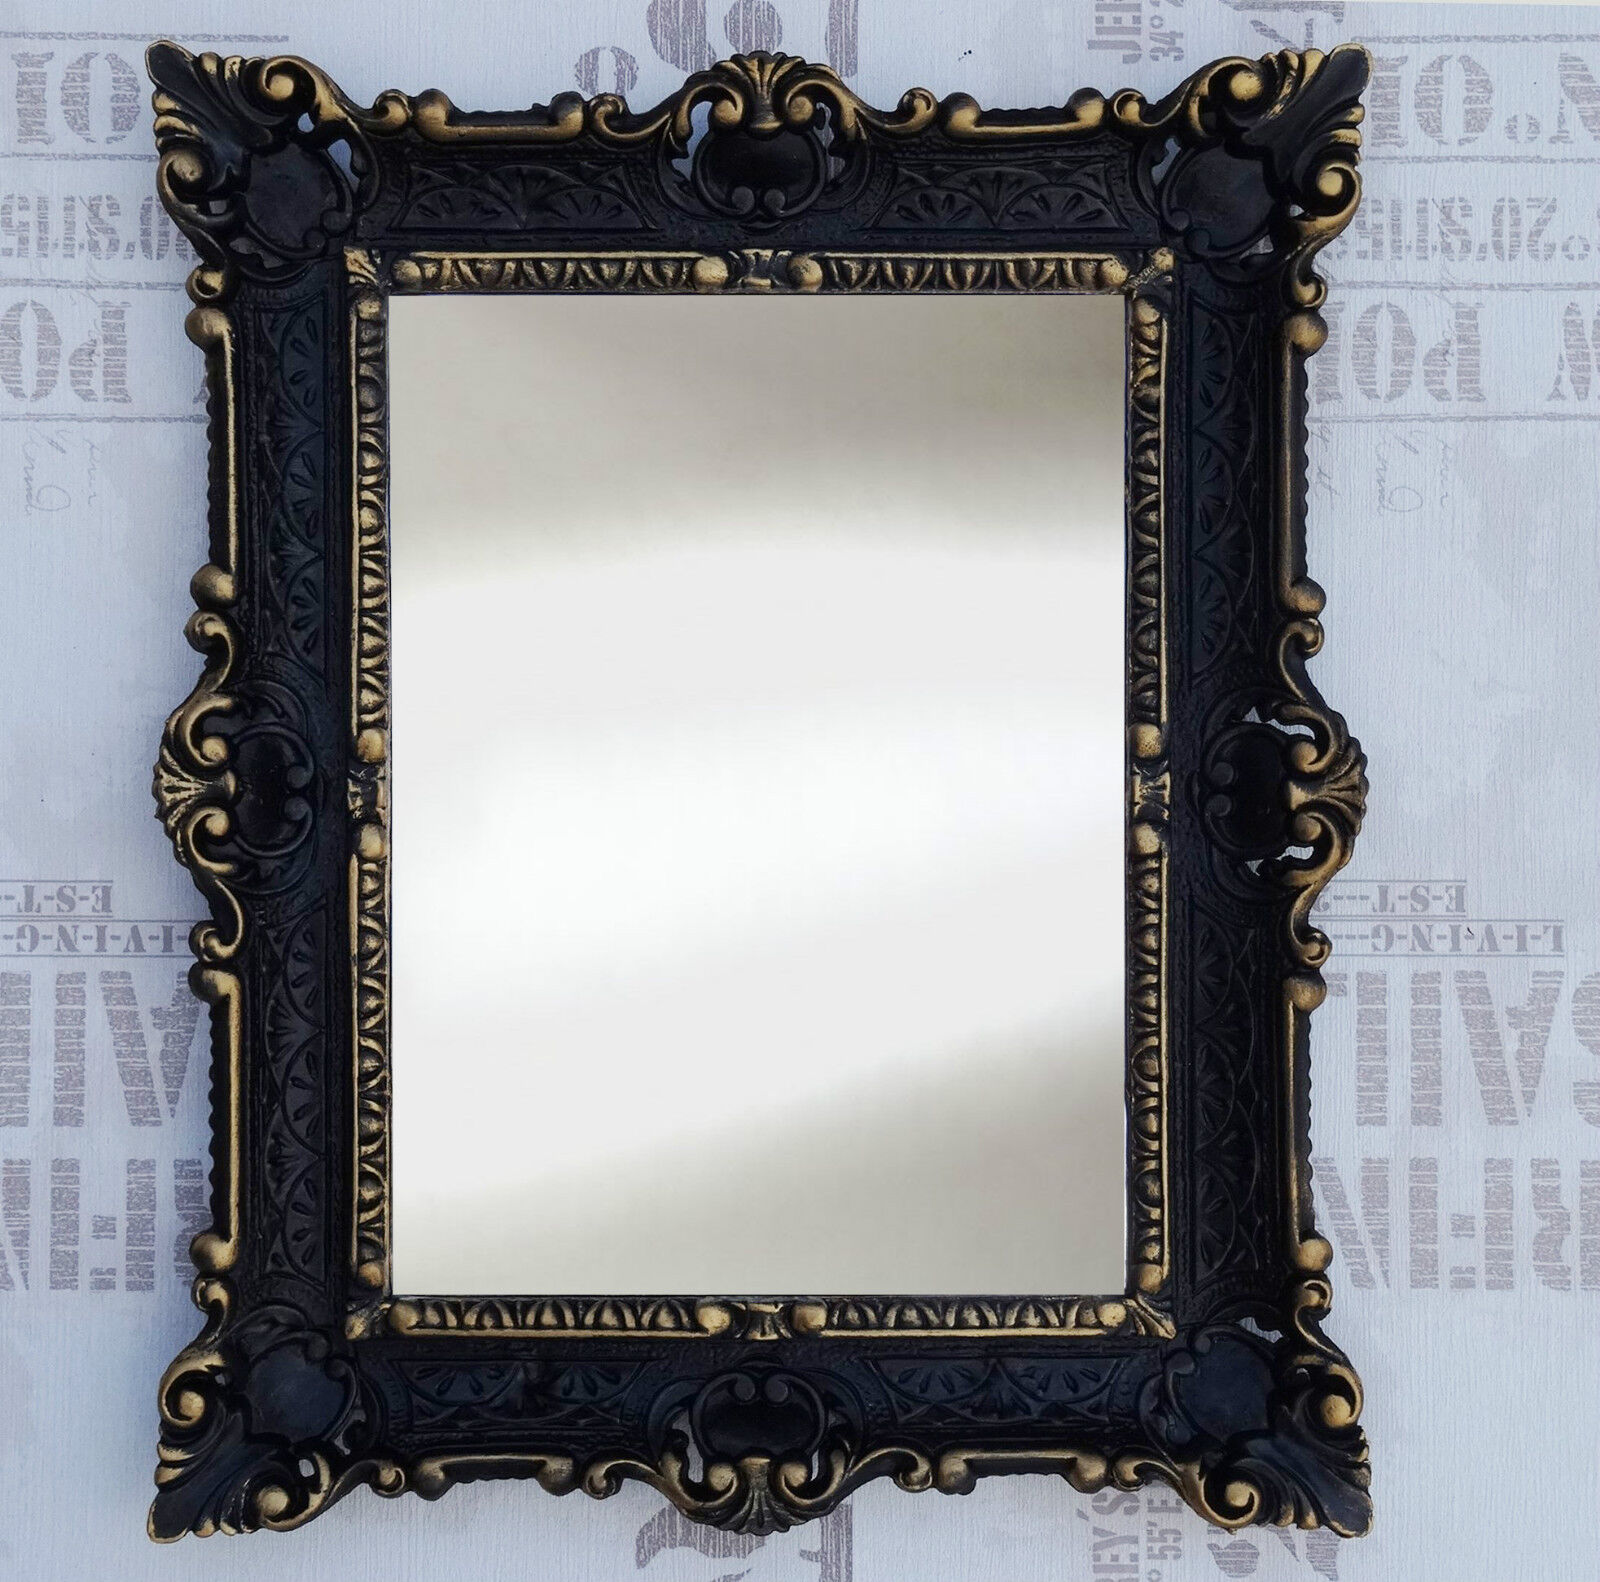 wall mirror black gold antique baroque bath floor mirror vanity mirror 56x46 ebay. Black Bedroom Furniture Sets. Home Design Ideas